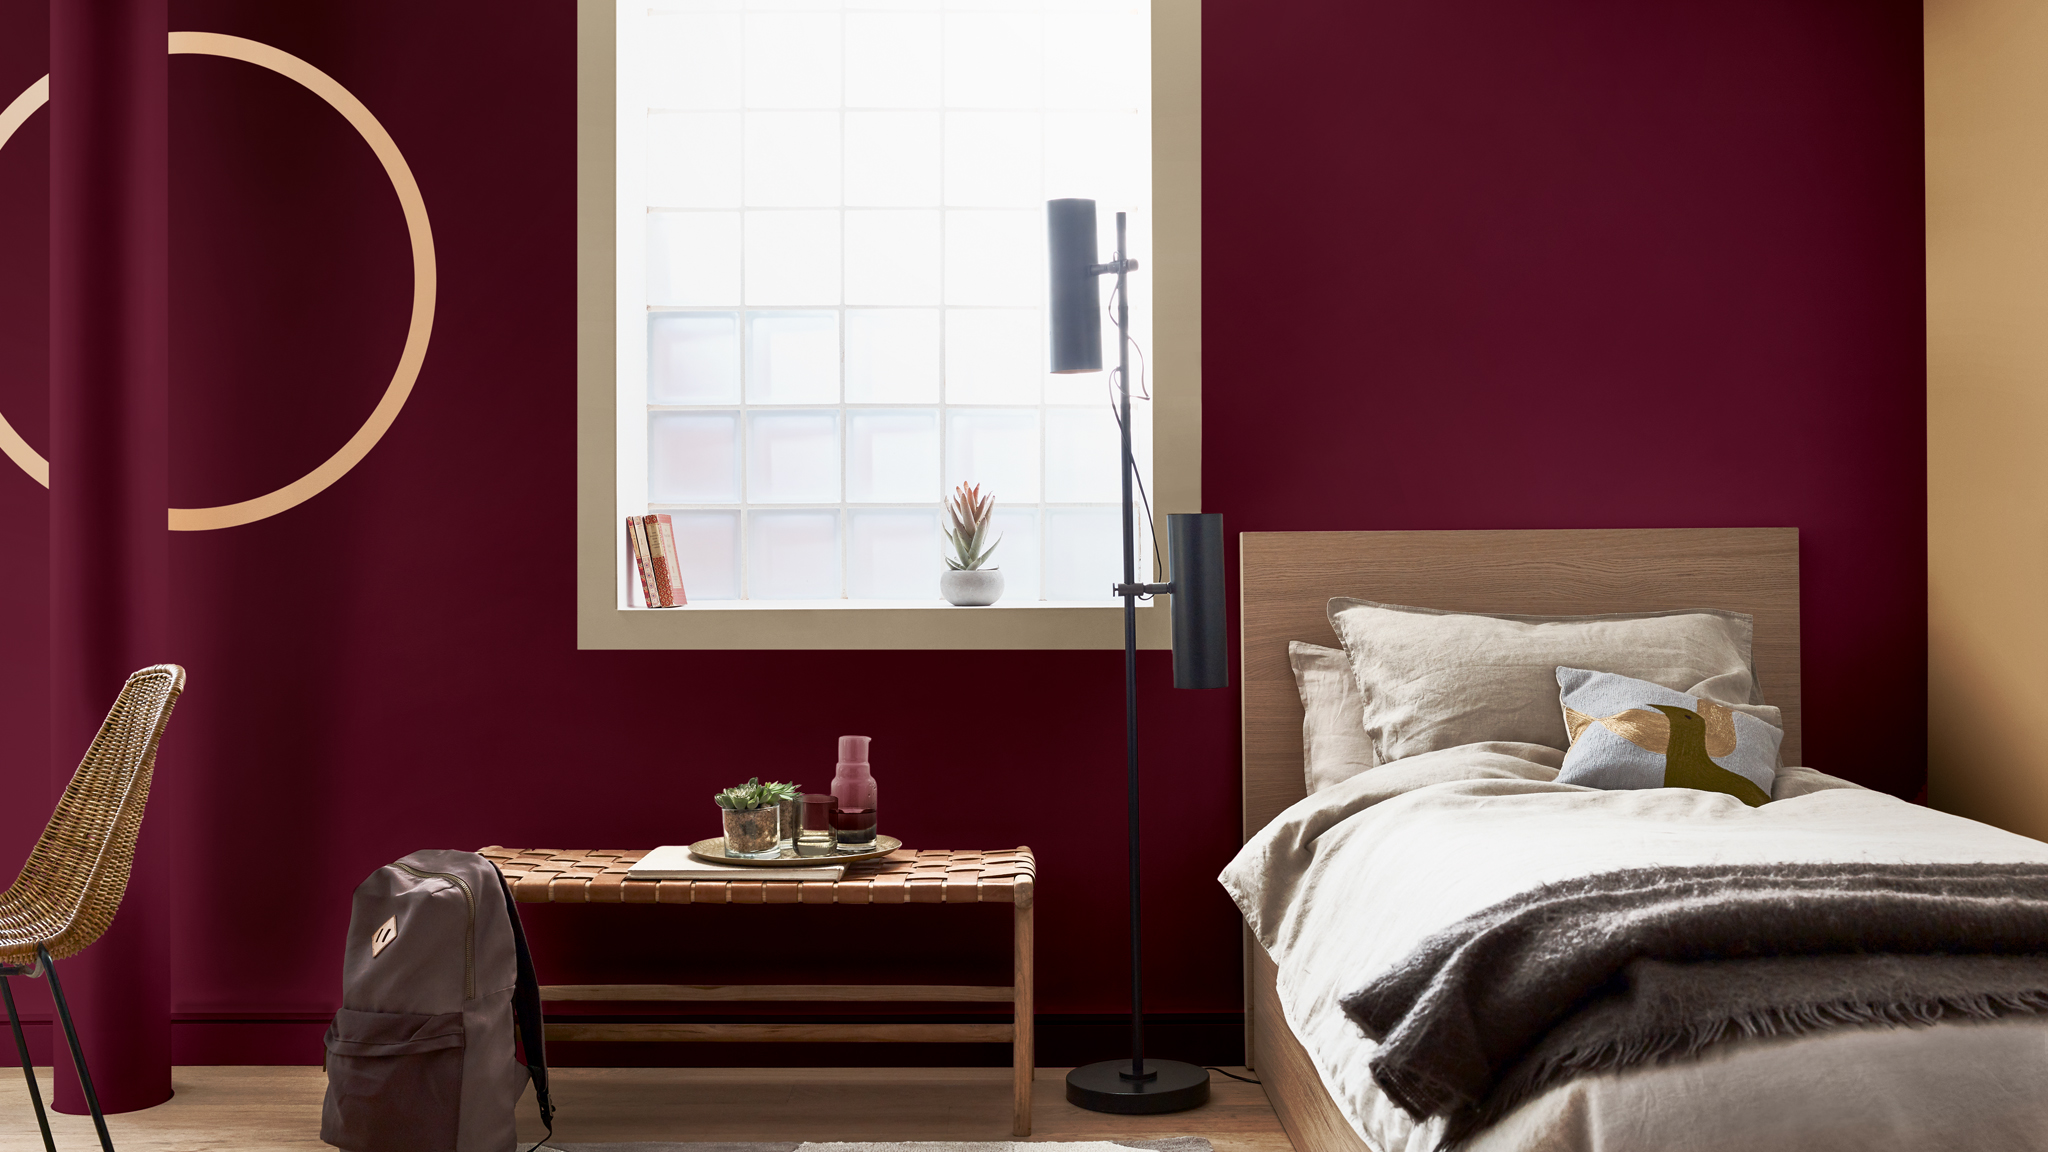 dulux-colour-futures-colour-of-the-year-2019-a-place-to-think-kidsroom-inspiration-global-016